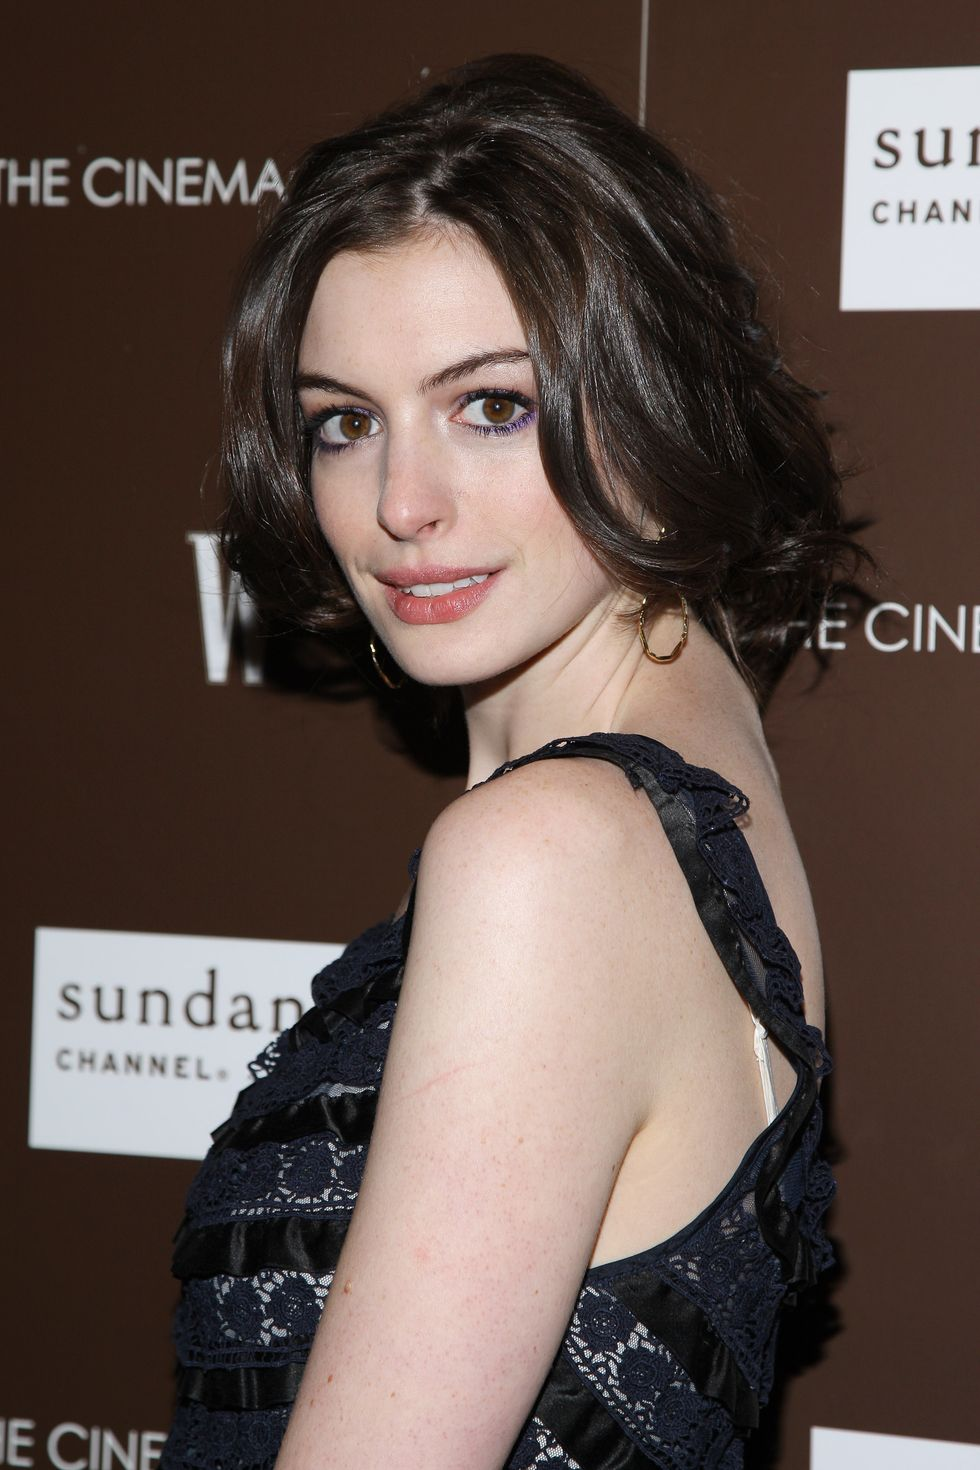 anne-hathaway-and-sophia-bush-marc-jacobs-louis-vuitton-screening-in-new-york-city-01